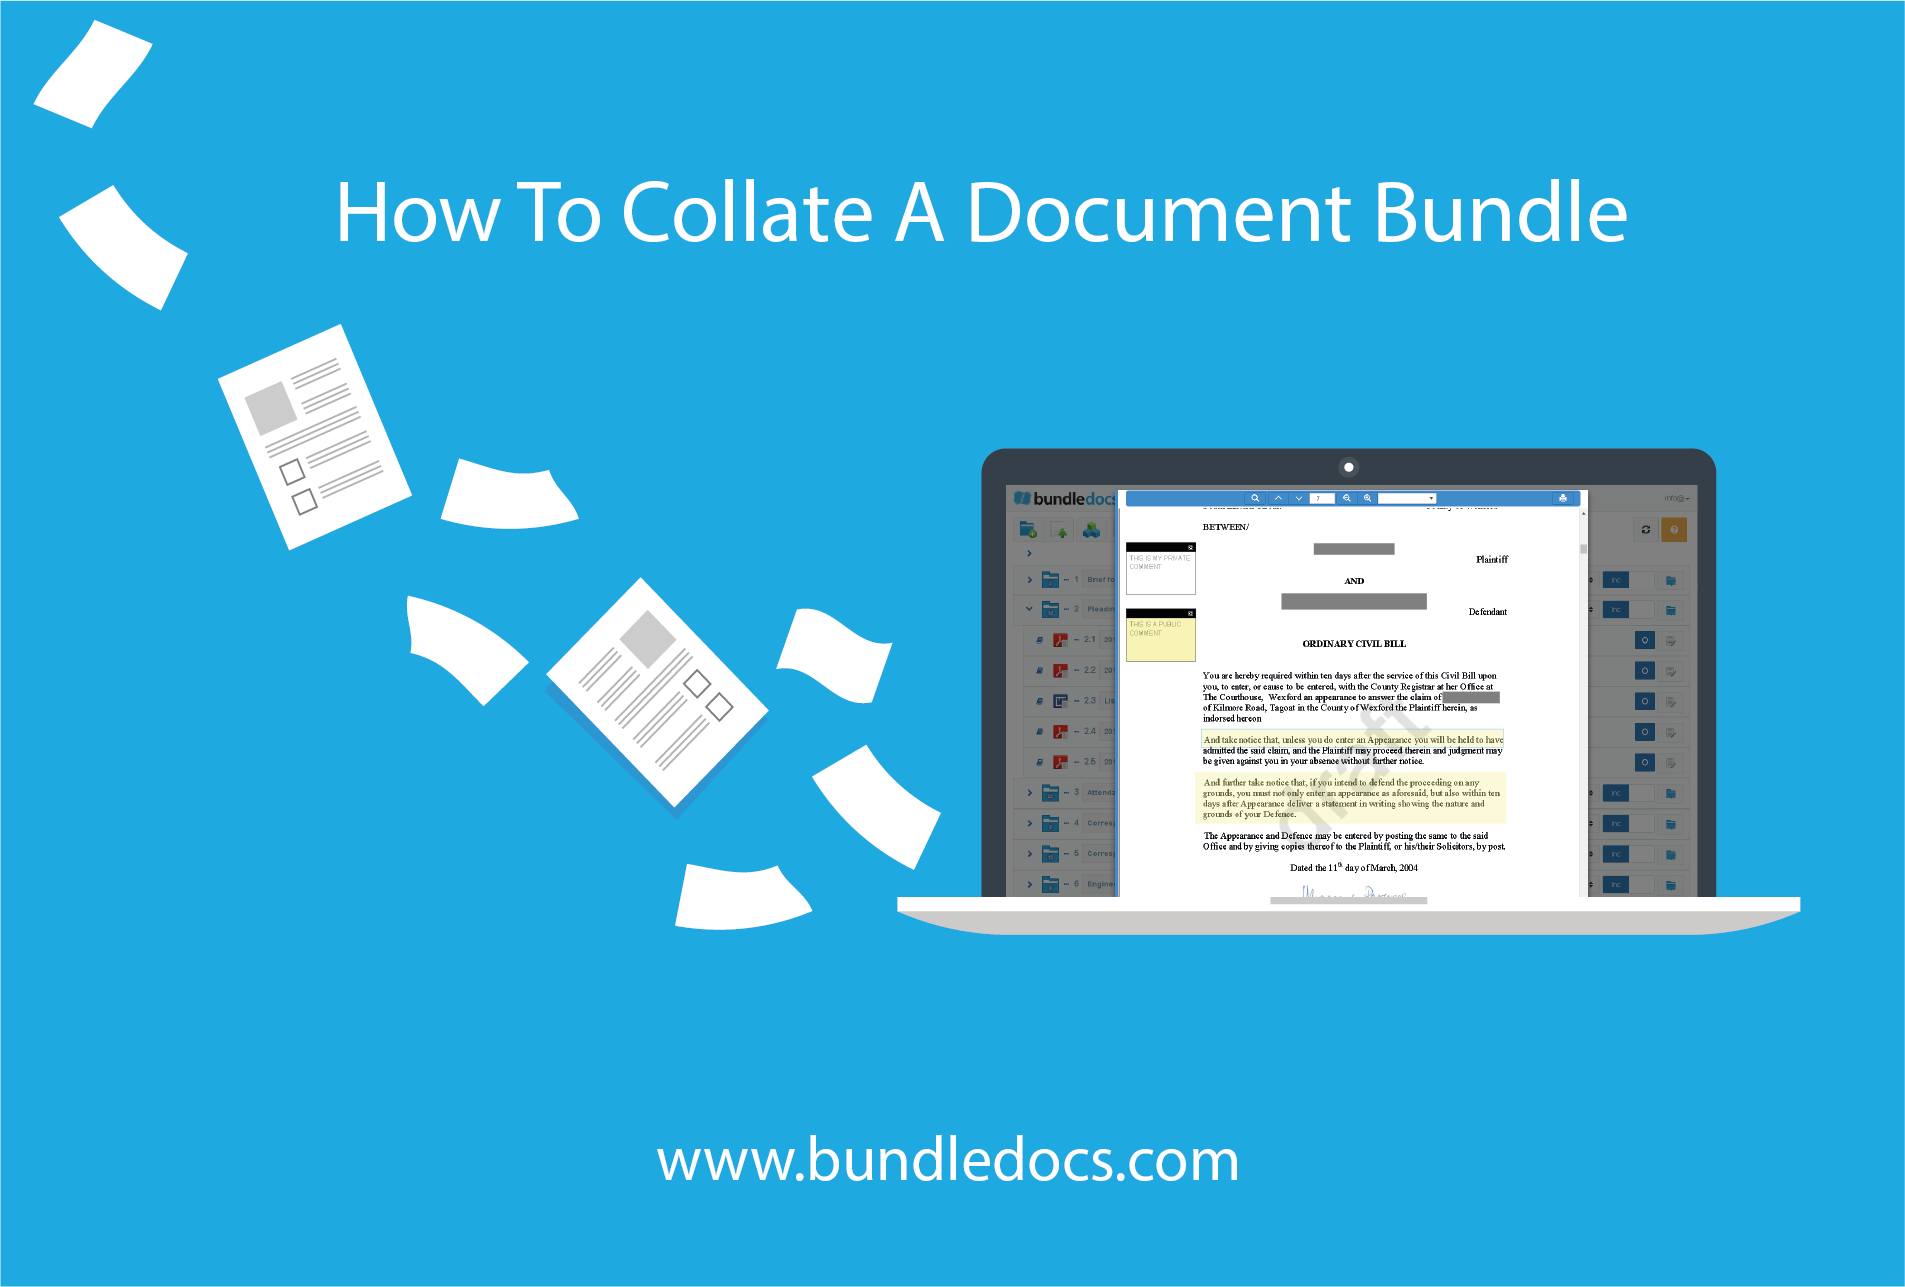 how-to-collate-a-document-bundle.png